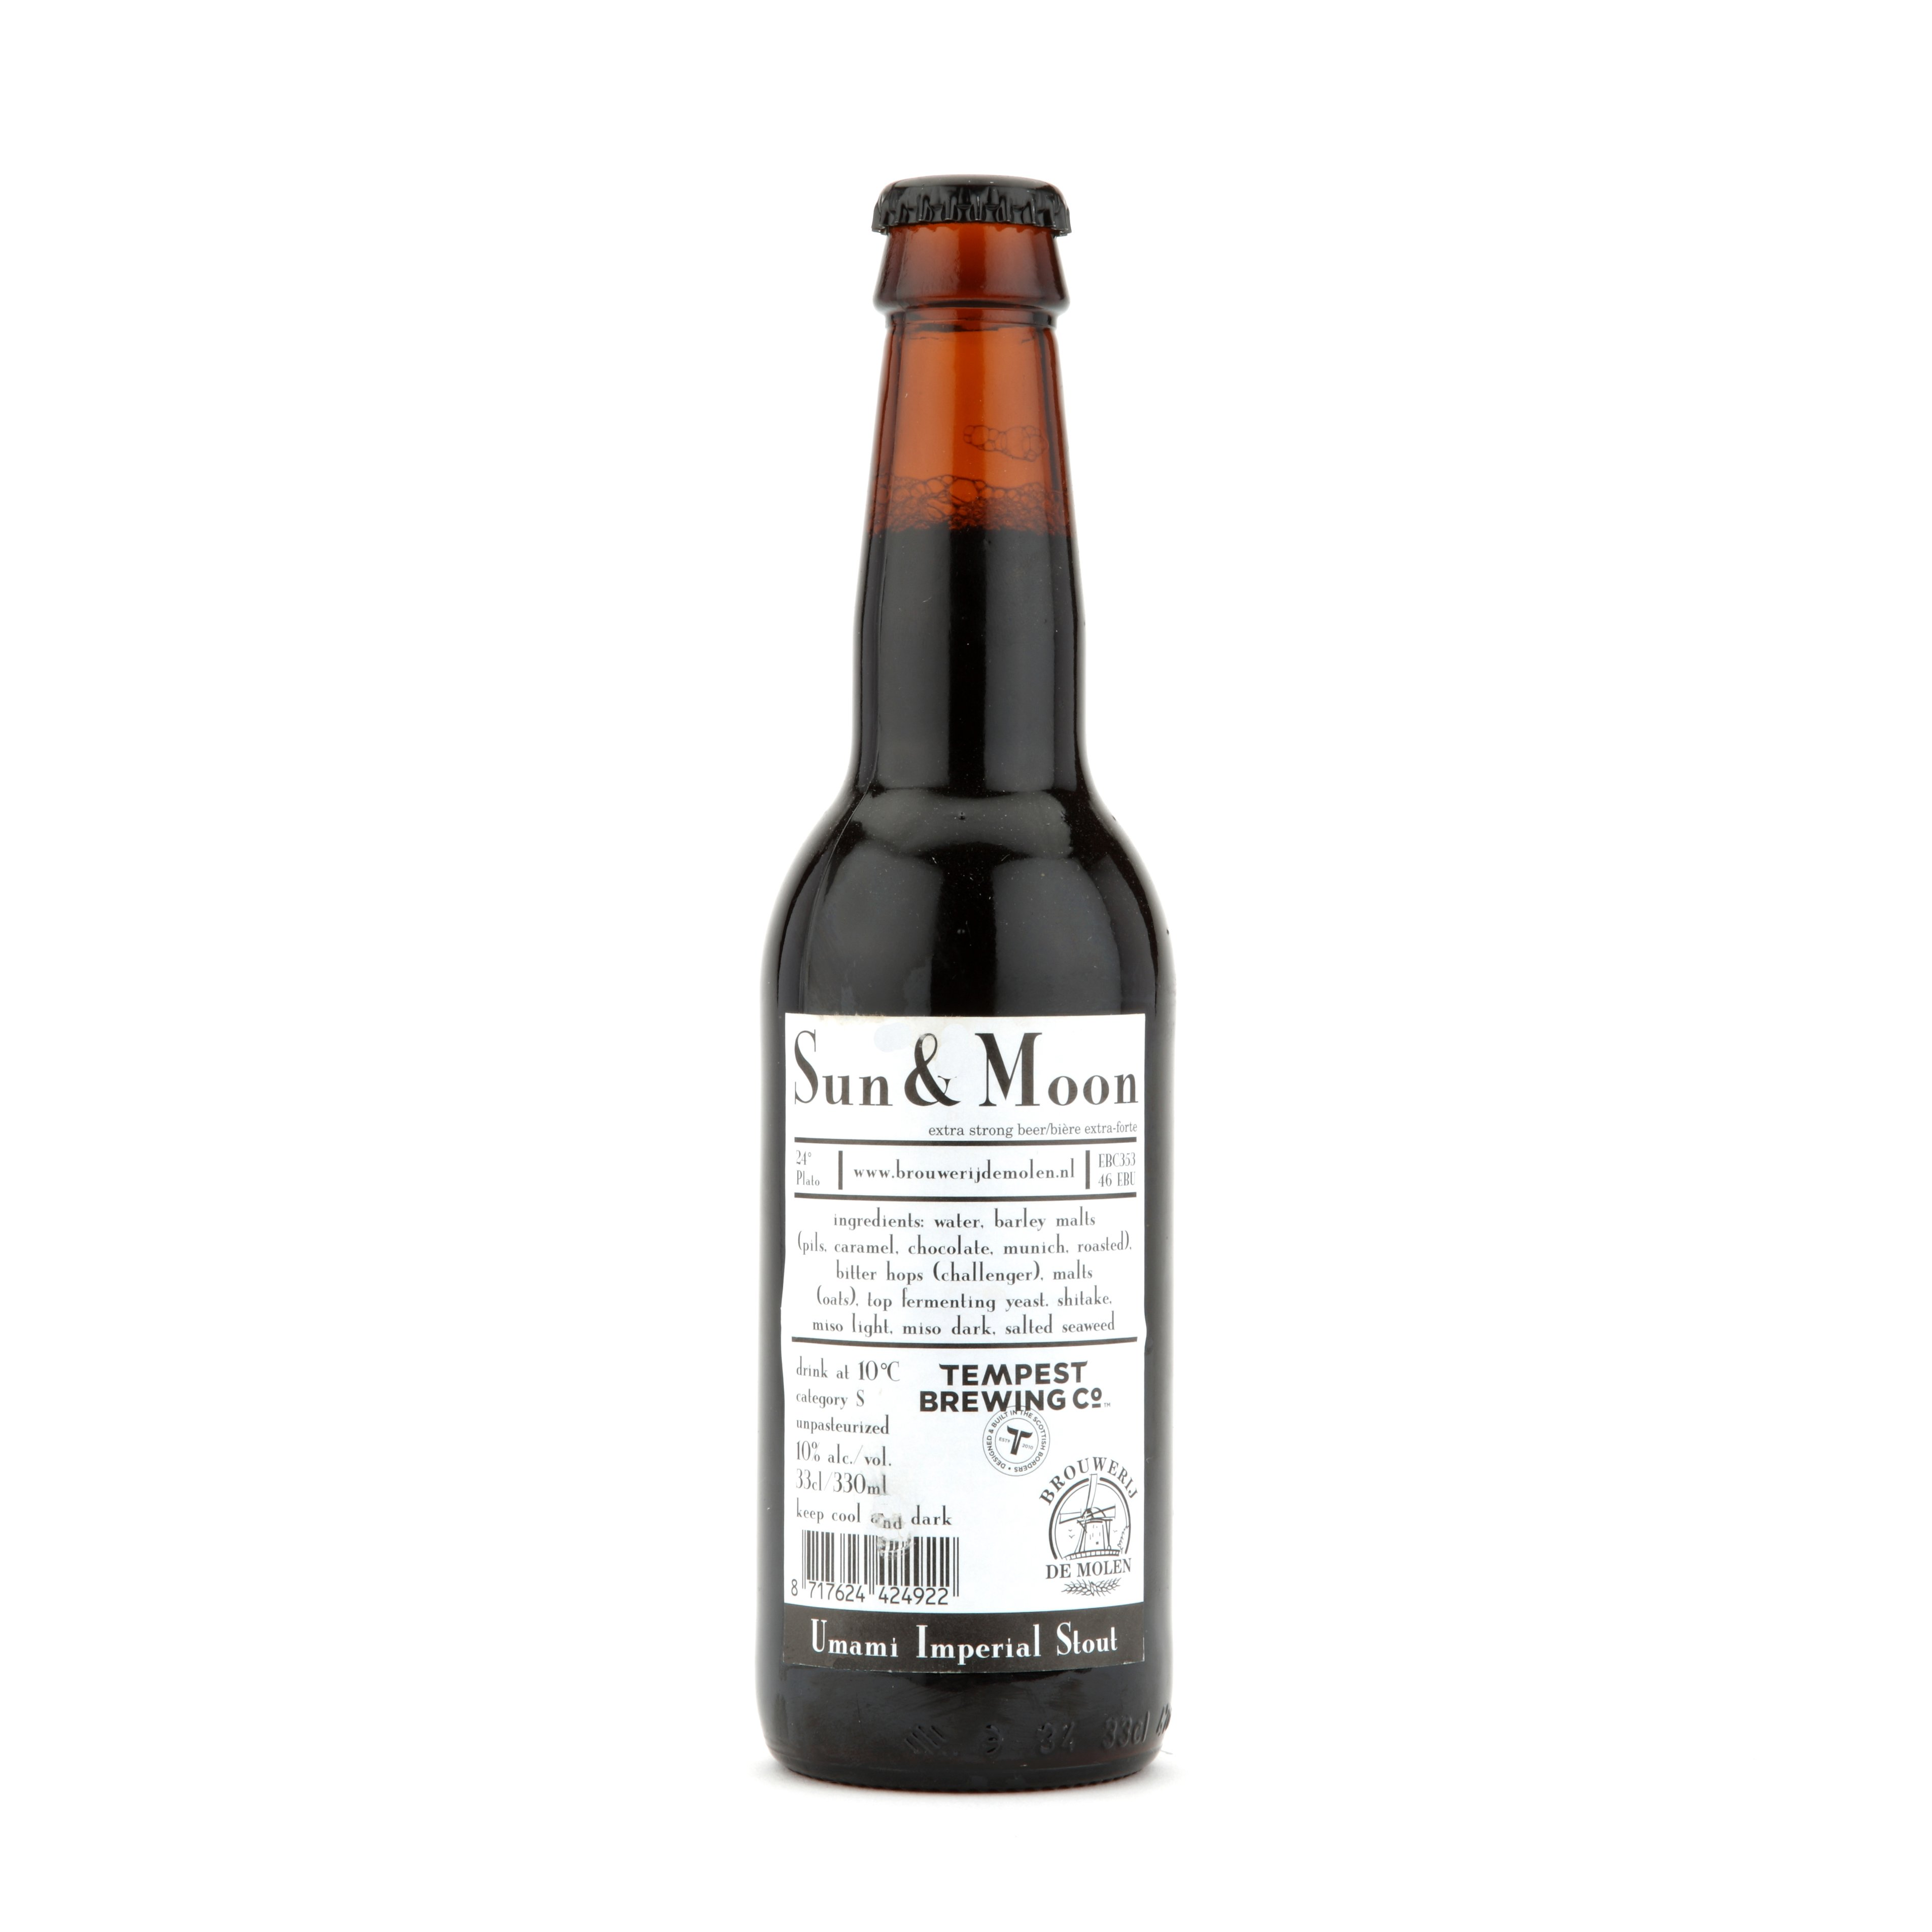 Sun & Moon Umami Imperial Stout - ABV 10% - Imperial Beer Club